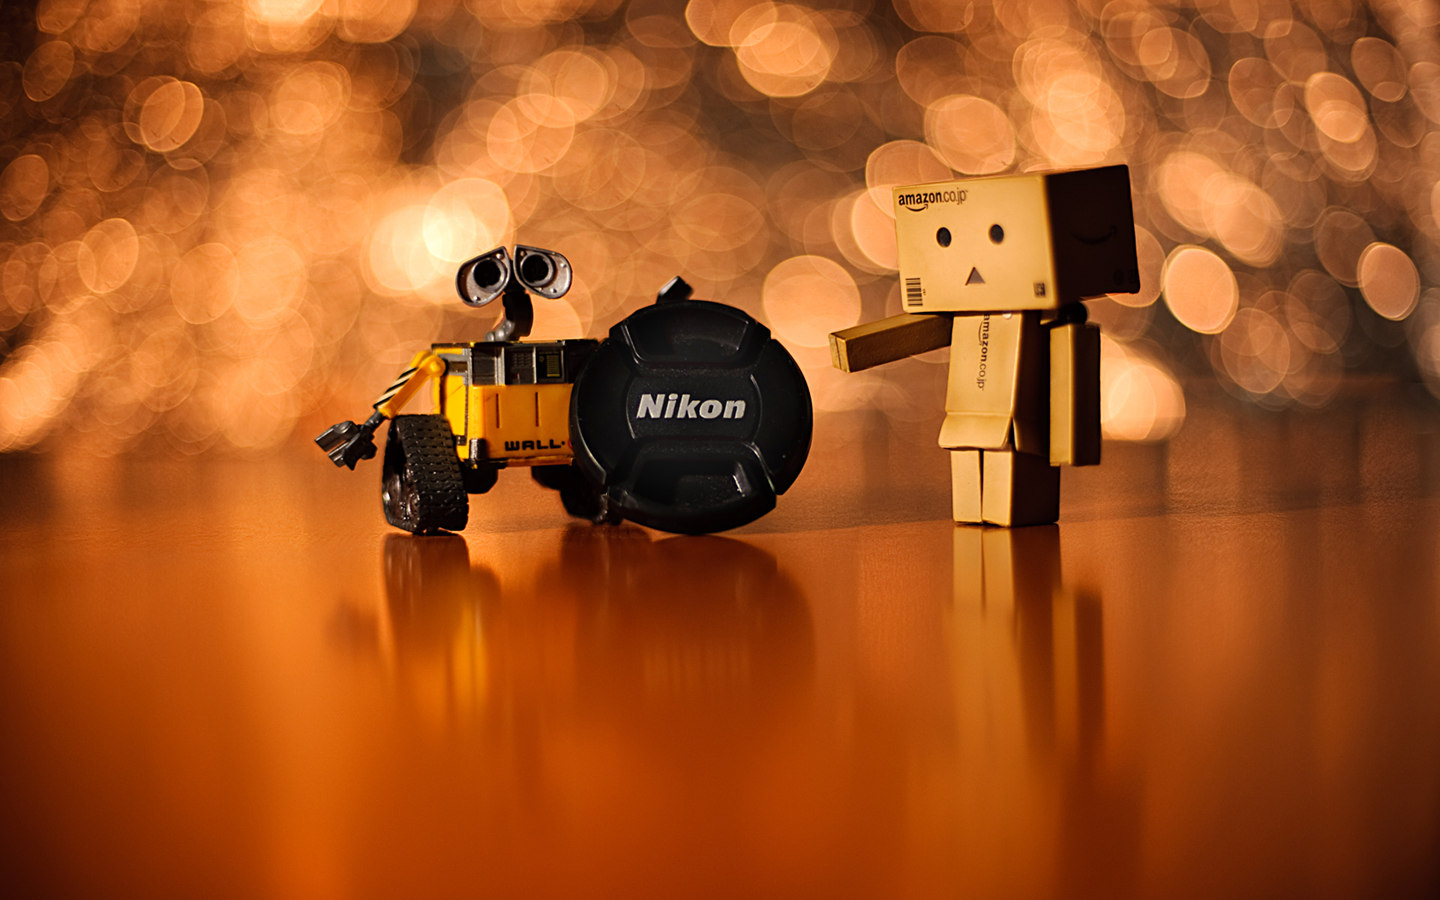 danboard wallpapers 28 hd - photo #14